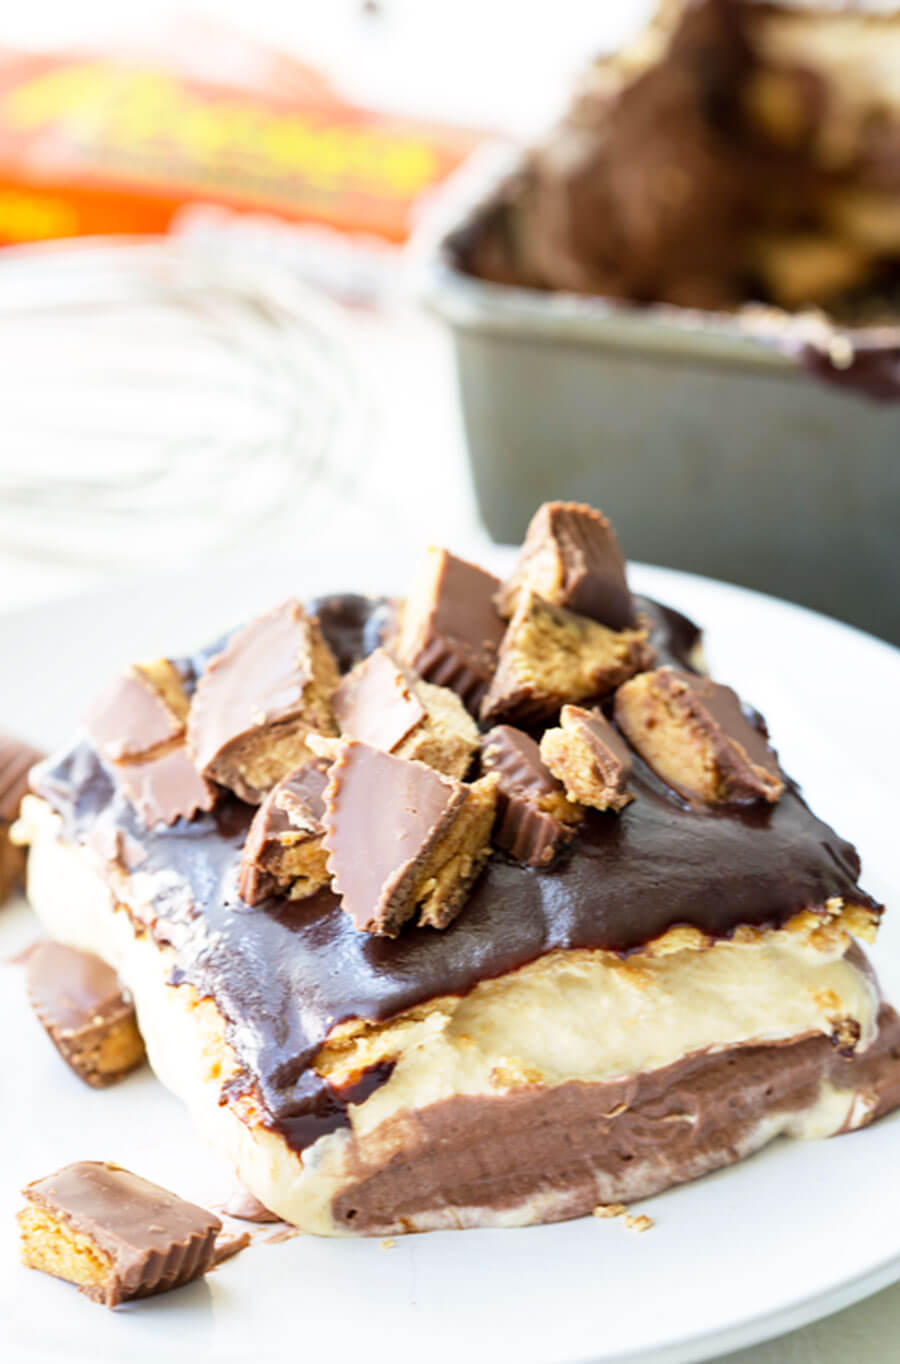 Reese's Ice Box Cake